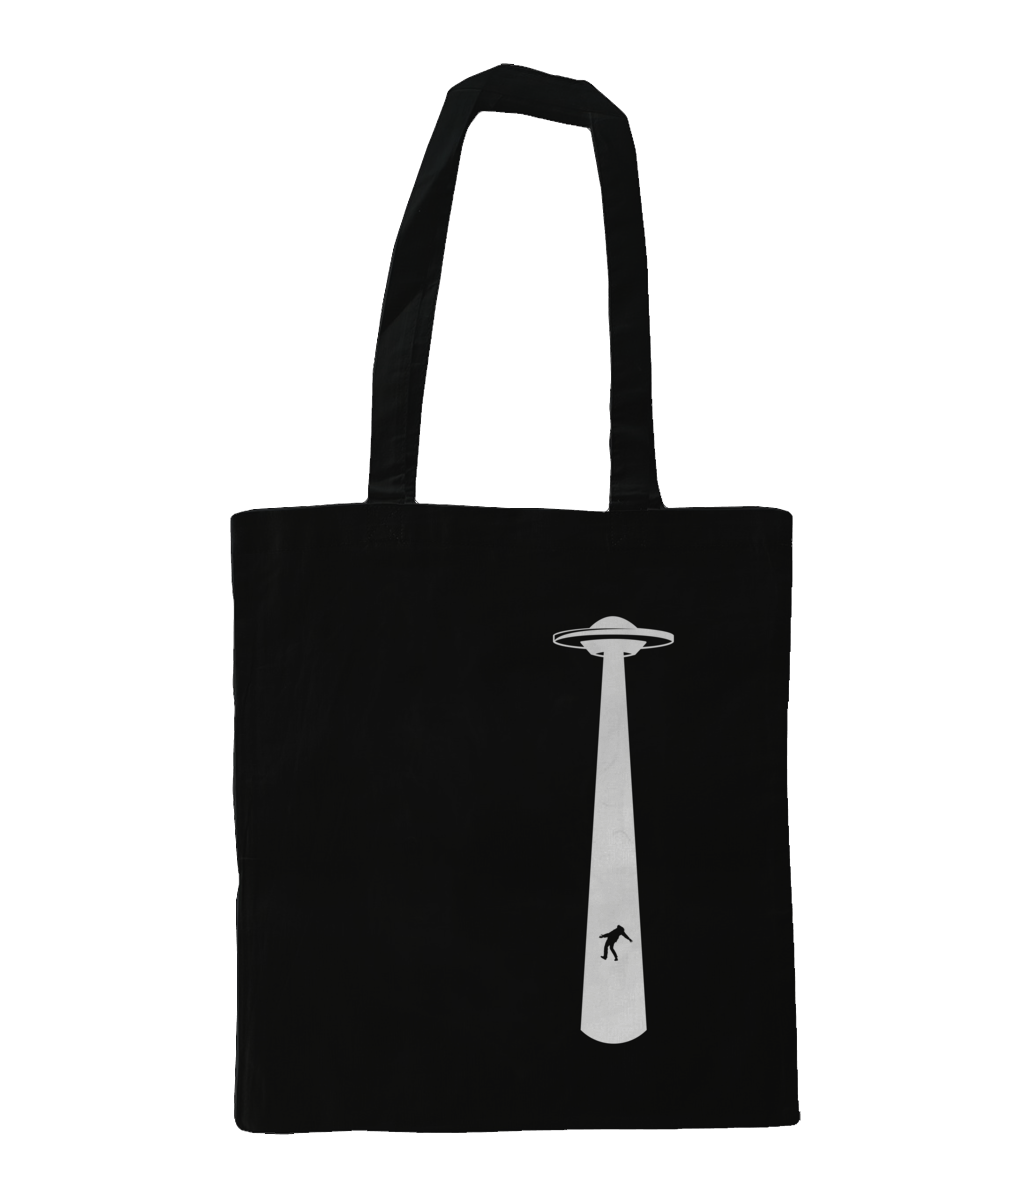 Take The Humans - Tote Bag - Abduction 51 Extraterrestrial Streetwear | UFO & Alien Inspired